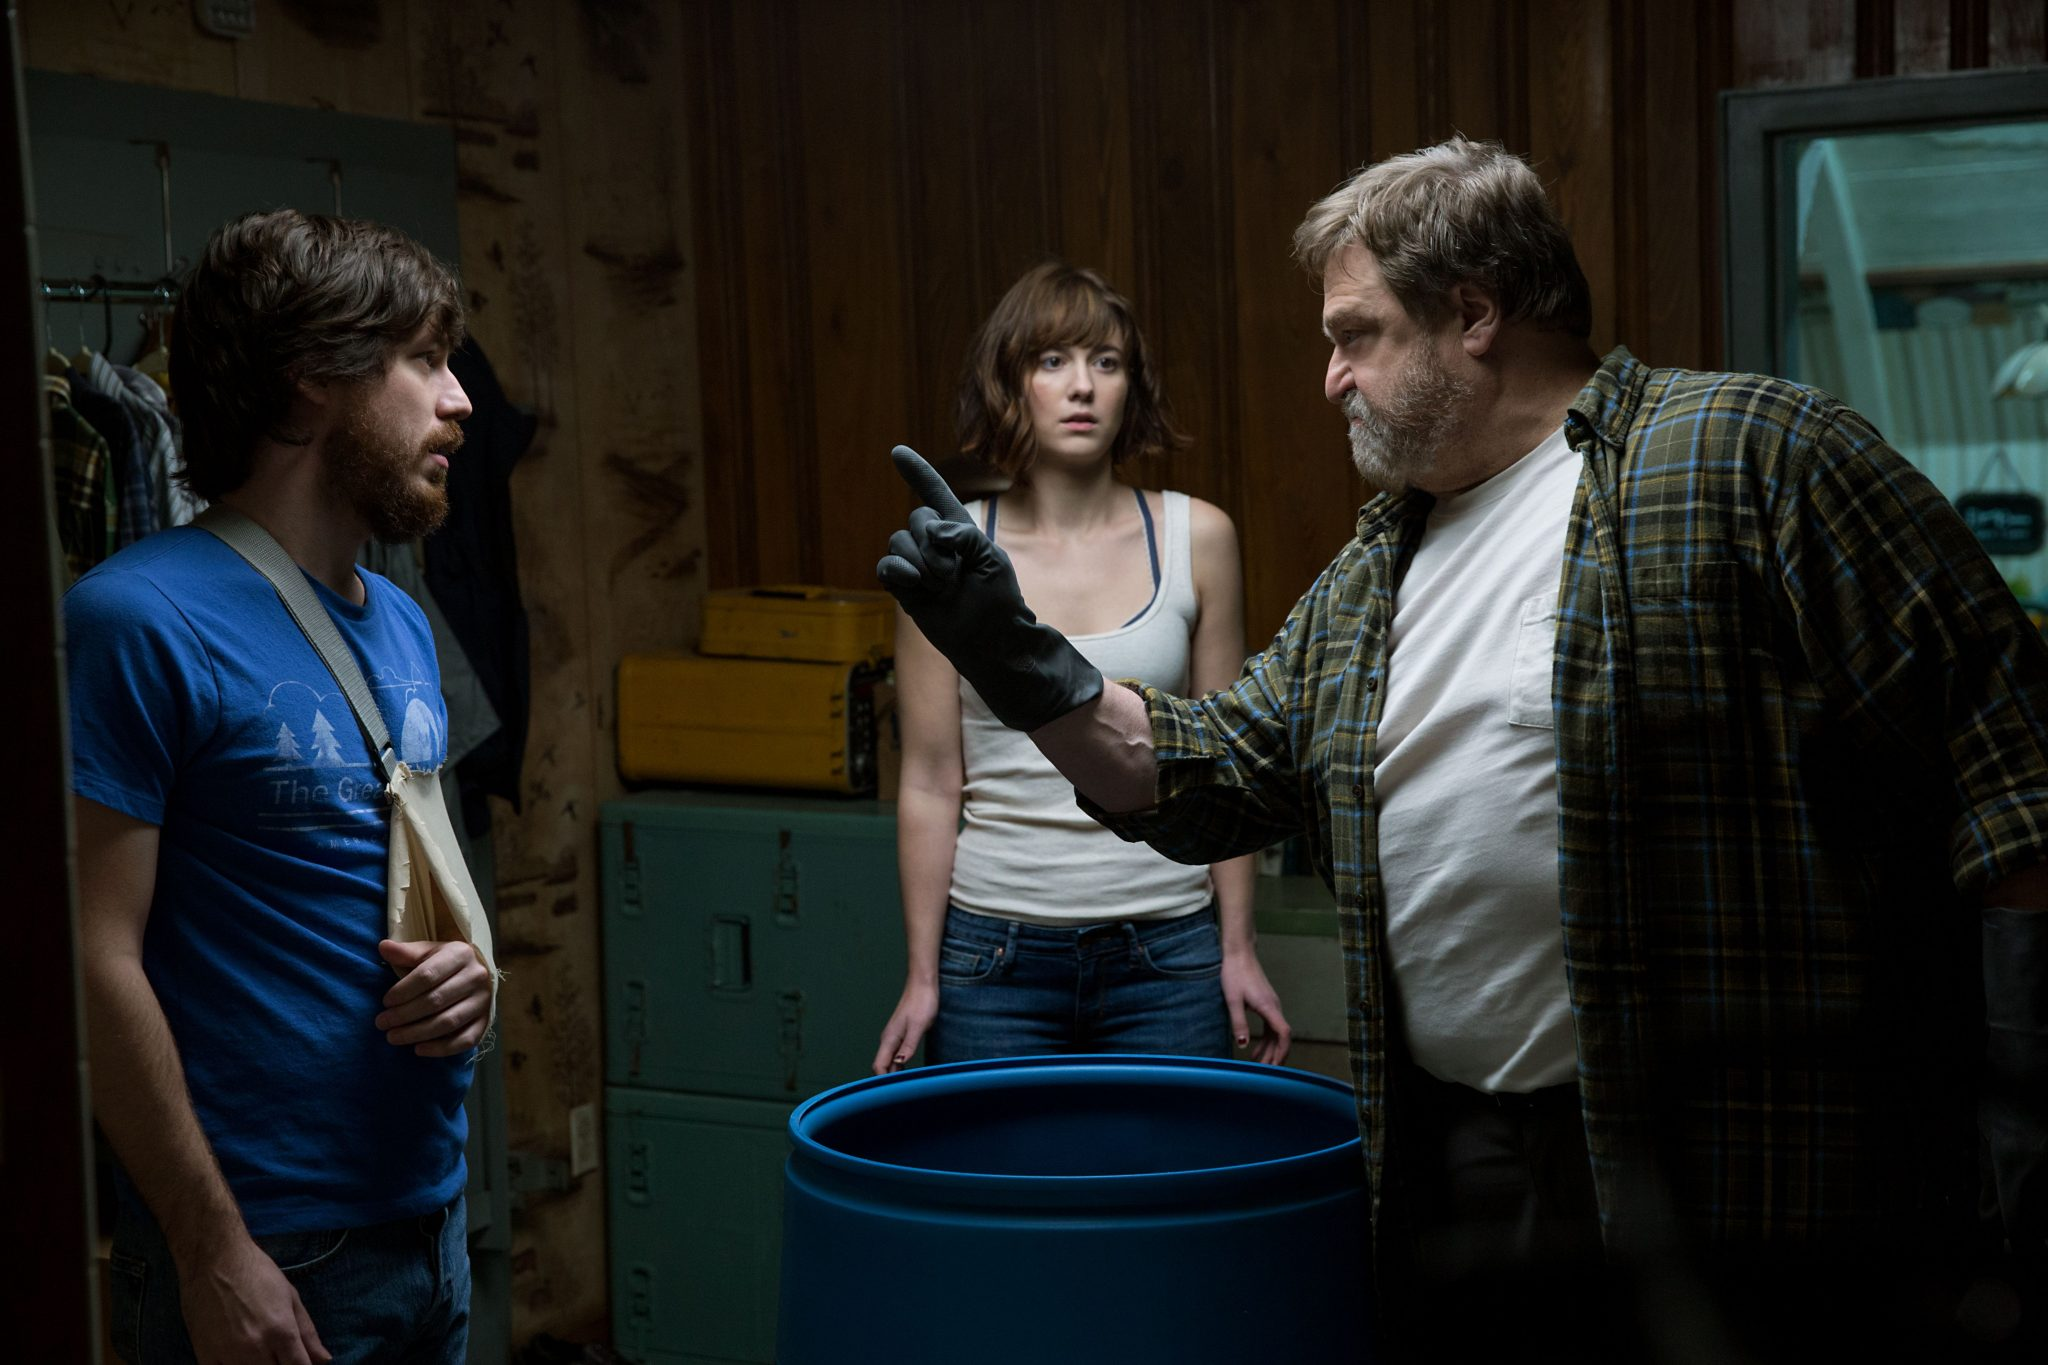 Review: 10 Cloverfield Lane Explores Clever New Ways to Build a Franchise